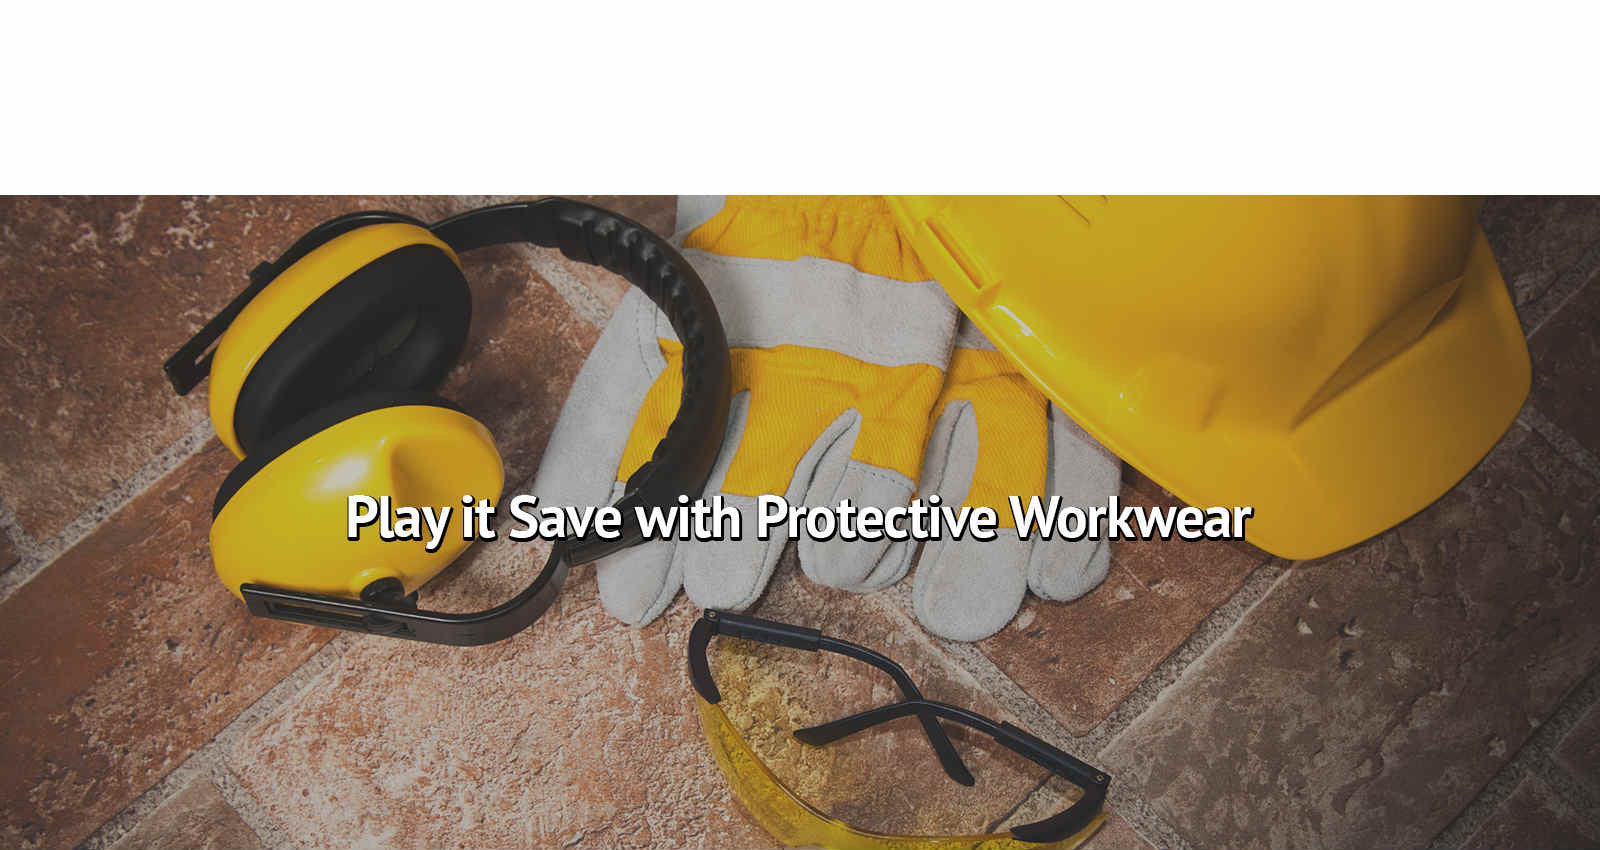 Protective Safety Work Wear Now Available at Best Trade Tools